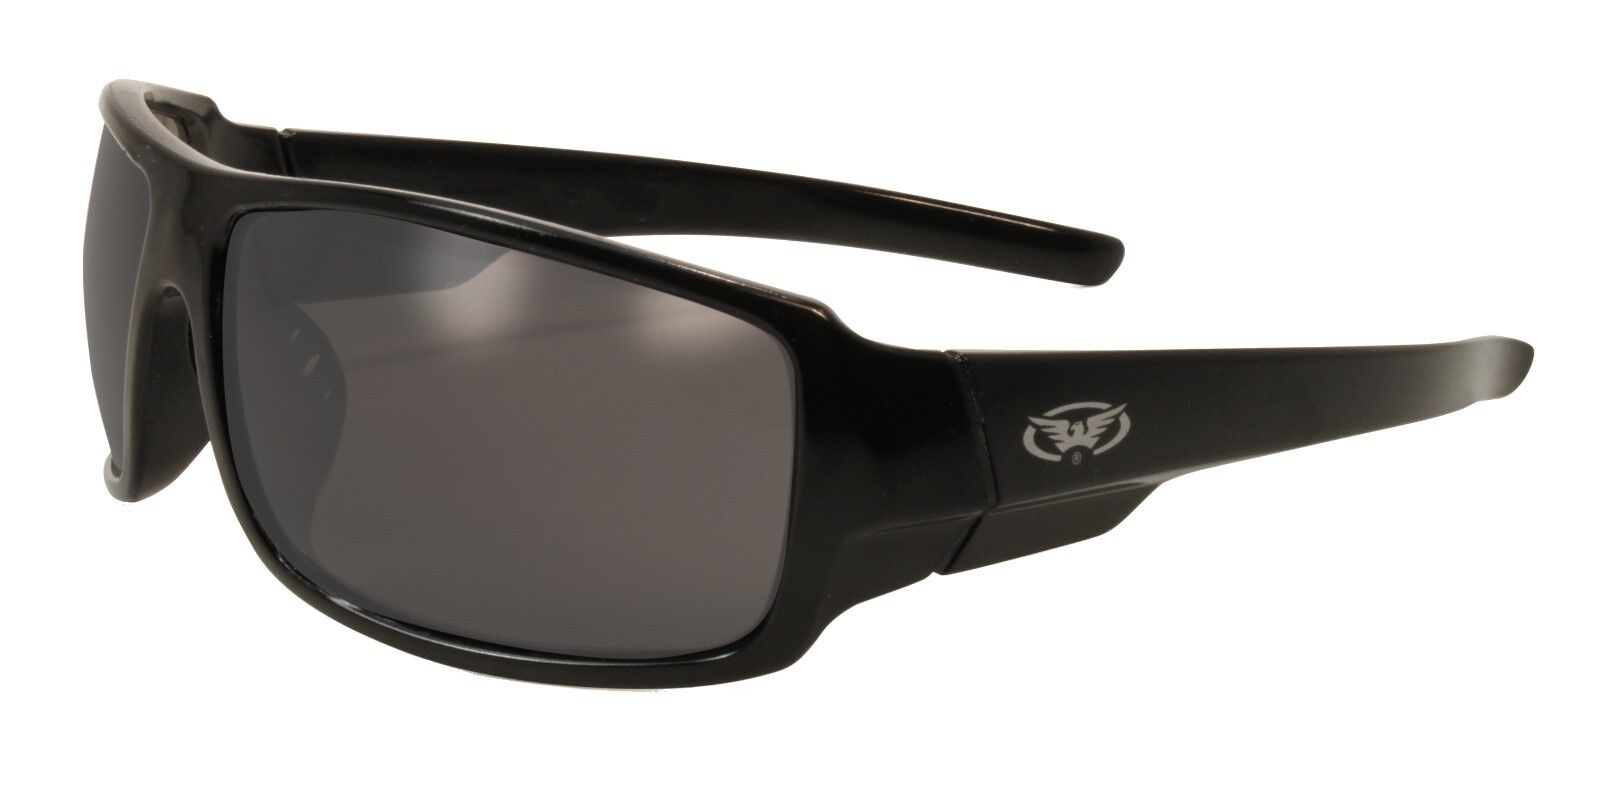 Polarised UV400 Shatterproof motorcycle sunglasses//Biker Glasses And Free Pouch